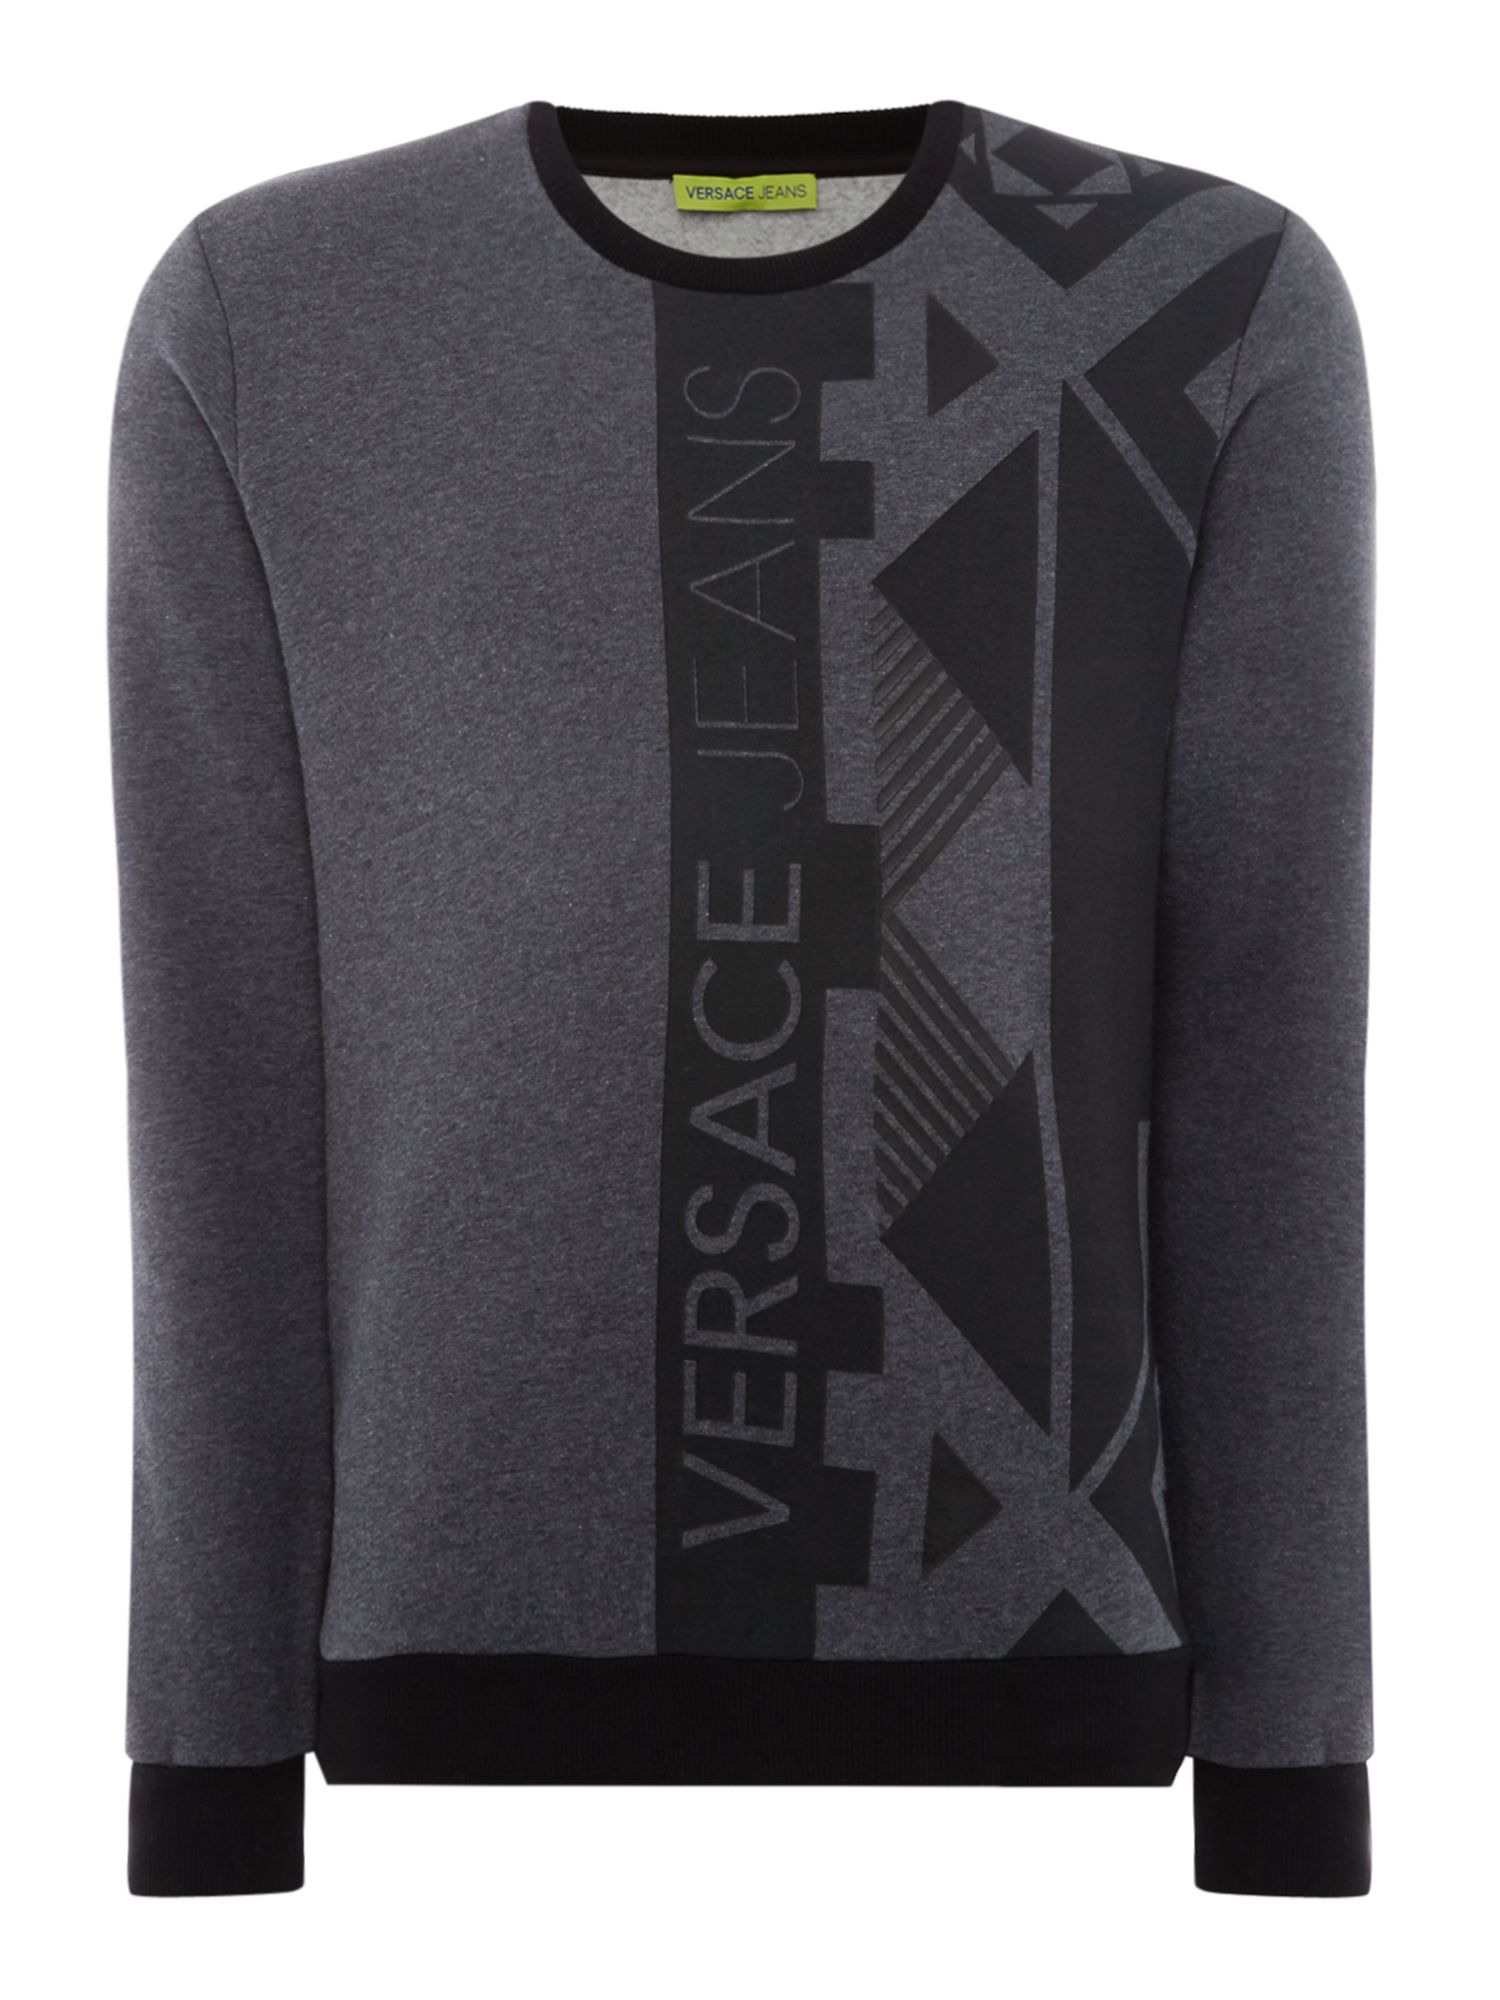 Men's Versace Jeans Geo graphic crew neck sweatshirt, Grey Marl